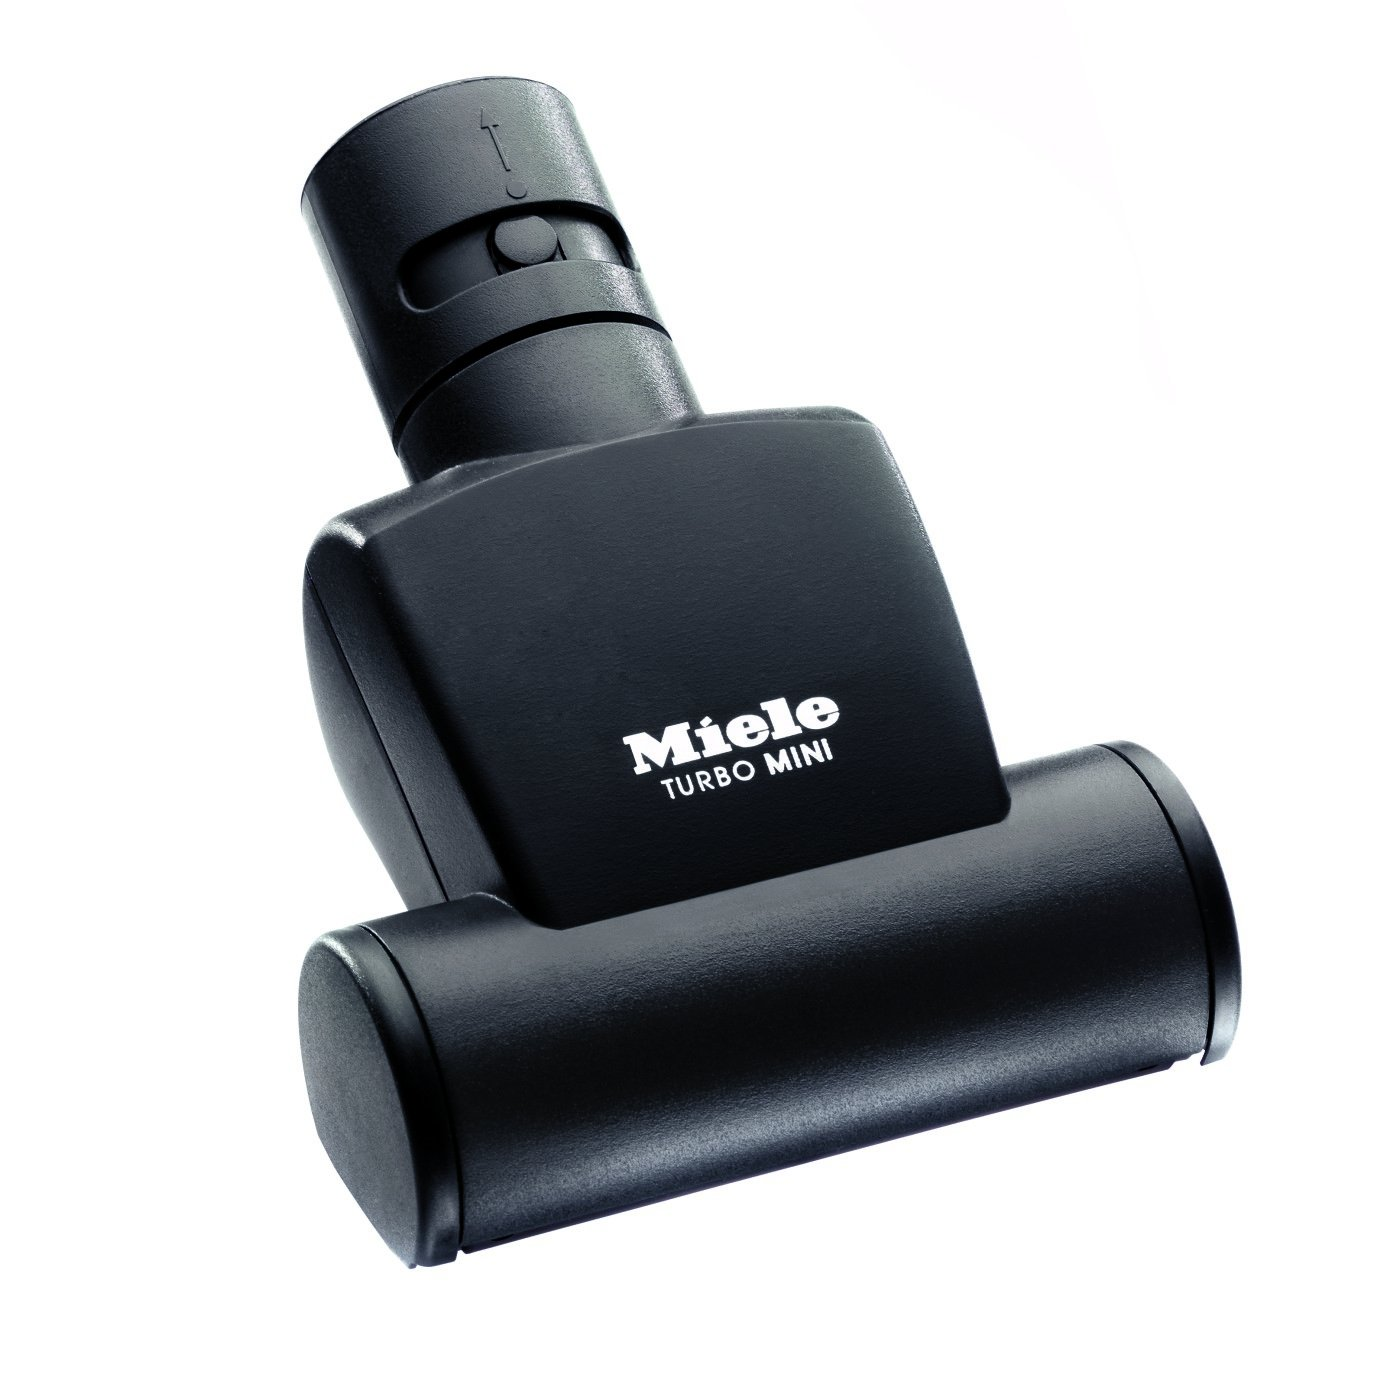 Miele STB 101Mini Handheld Turbobrush